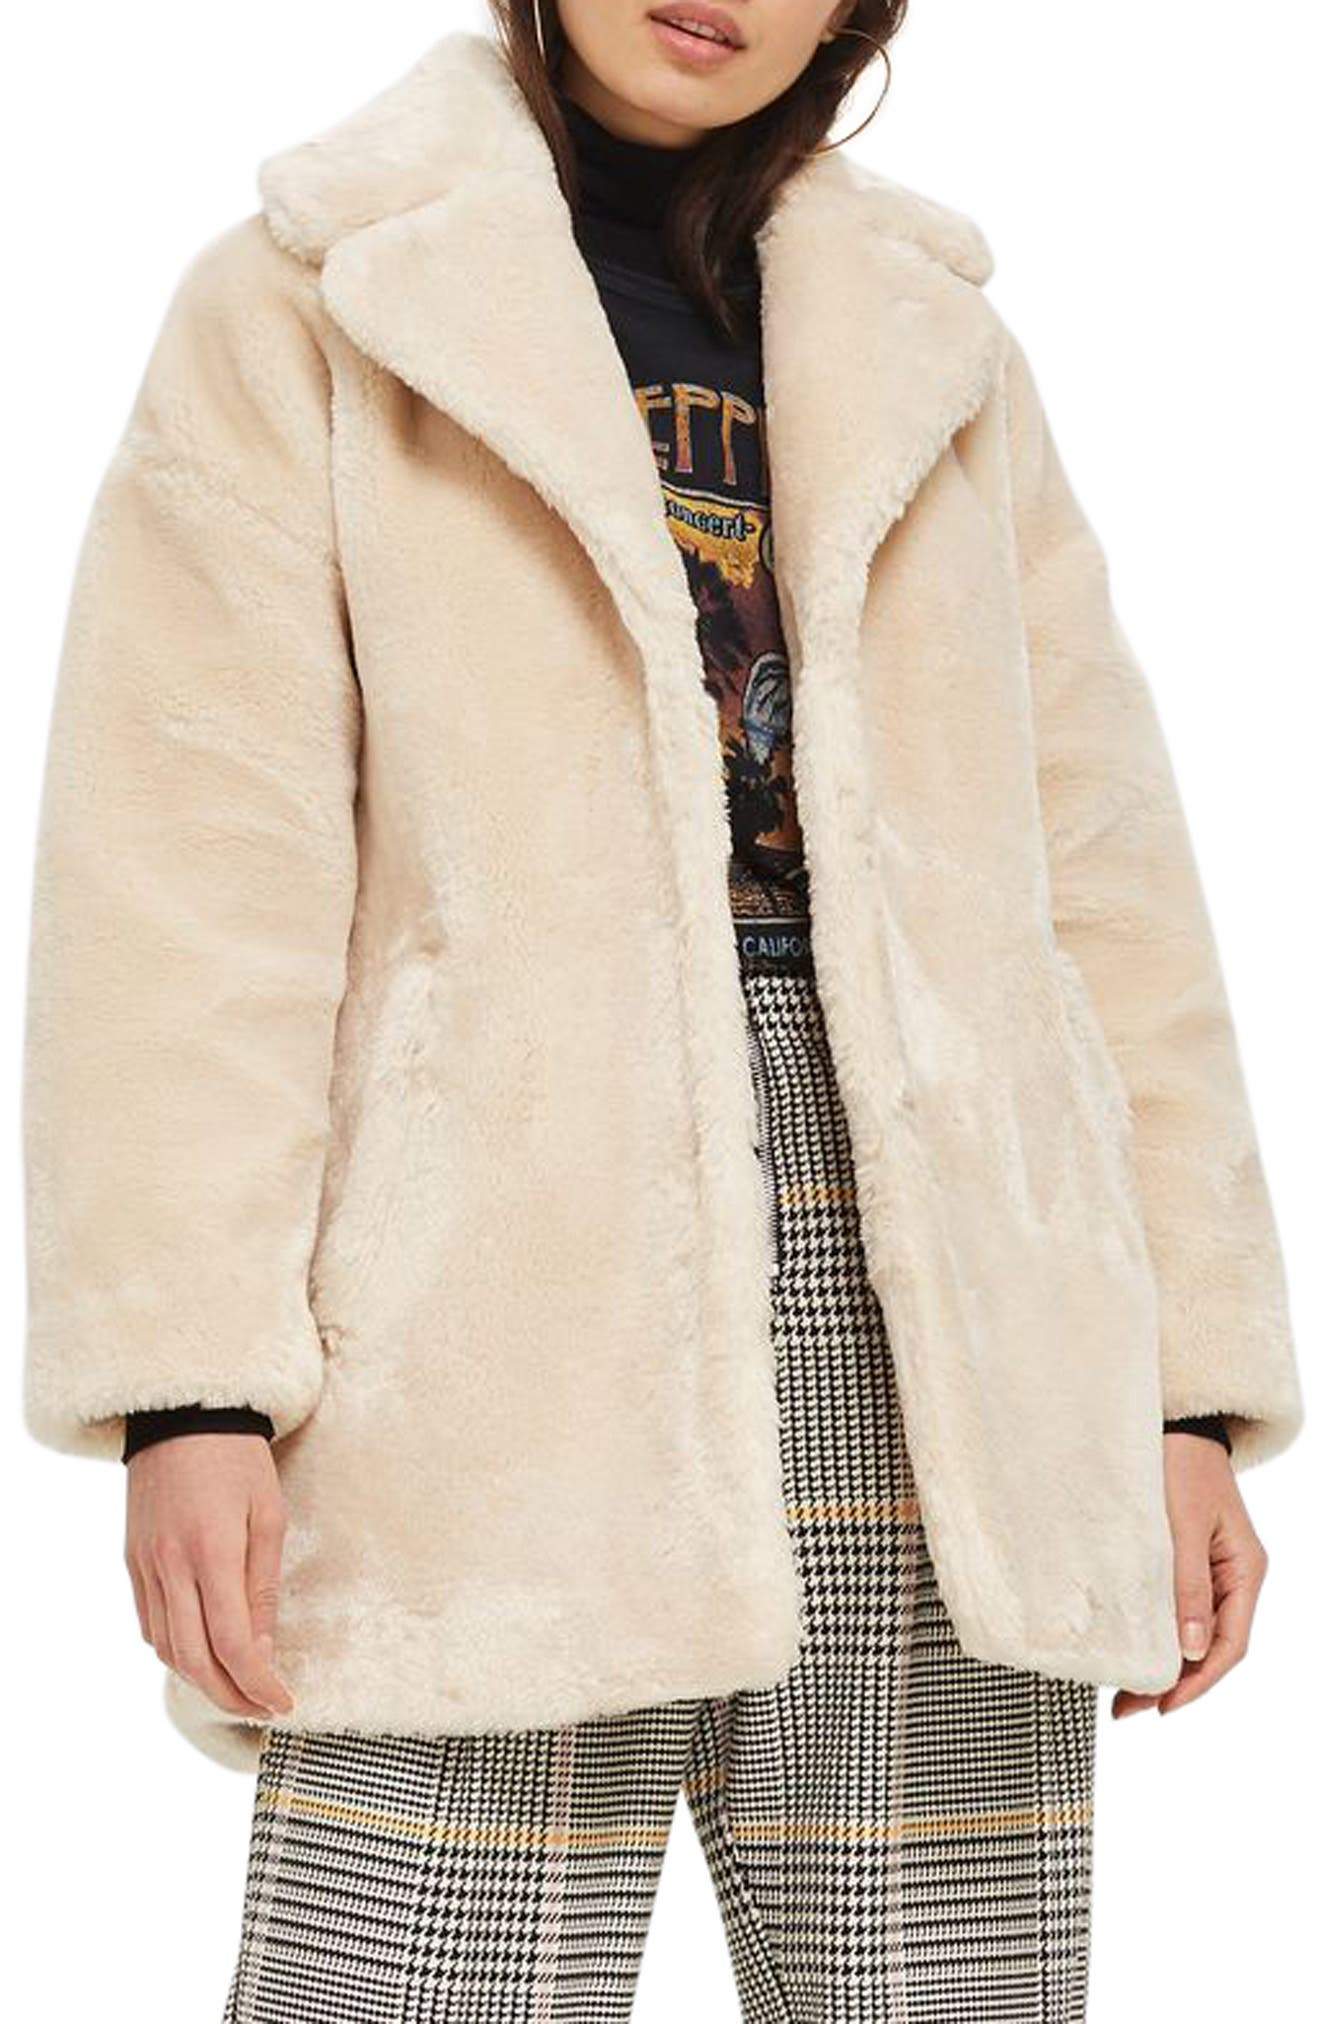 Topshop Polar Bear Faux Fur Coat